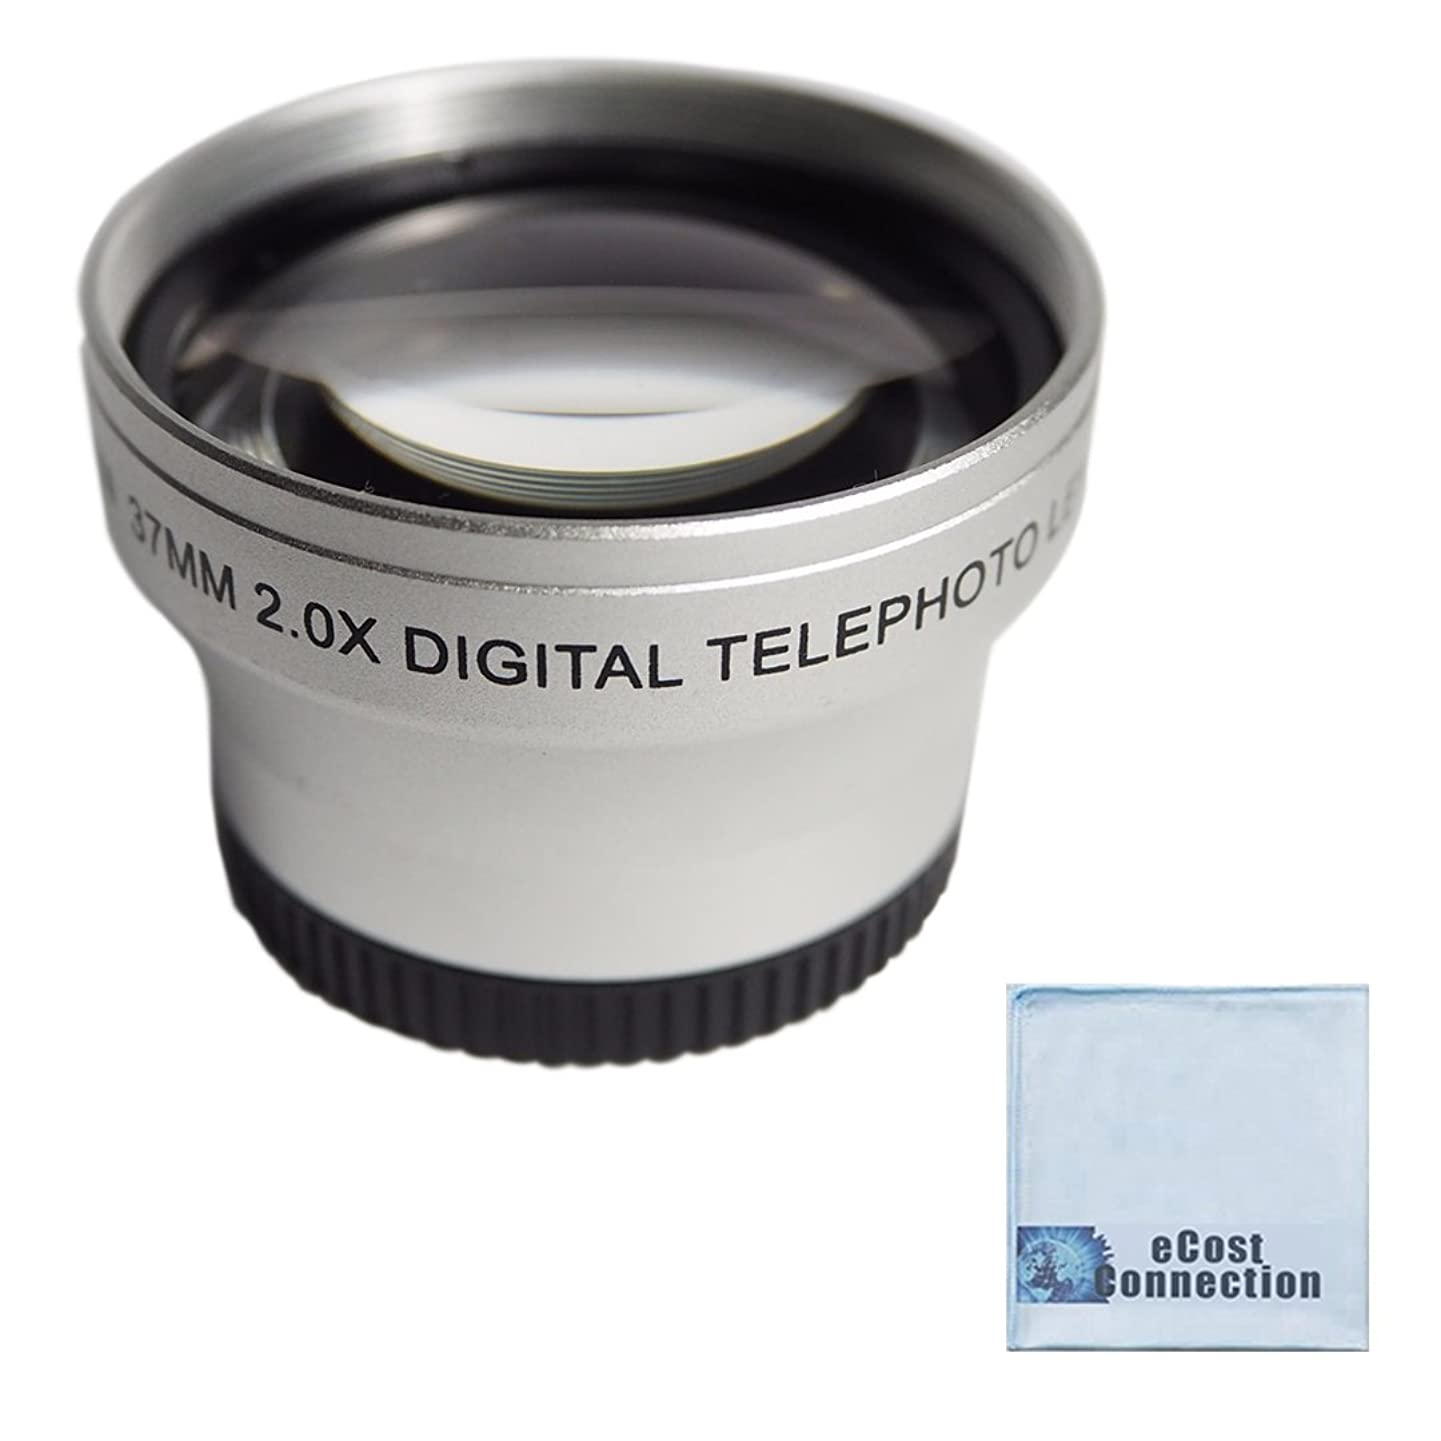 37mm Titanium Telephoto Lens For Sony , Panasonic , Canon , JVC , Samsung , Nikon And Other Camcorders